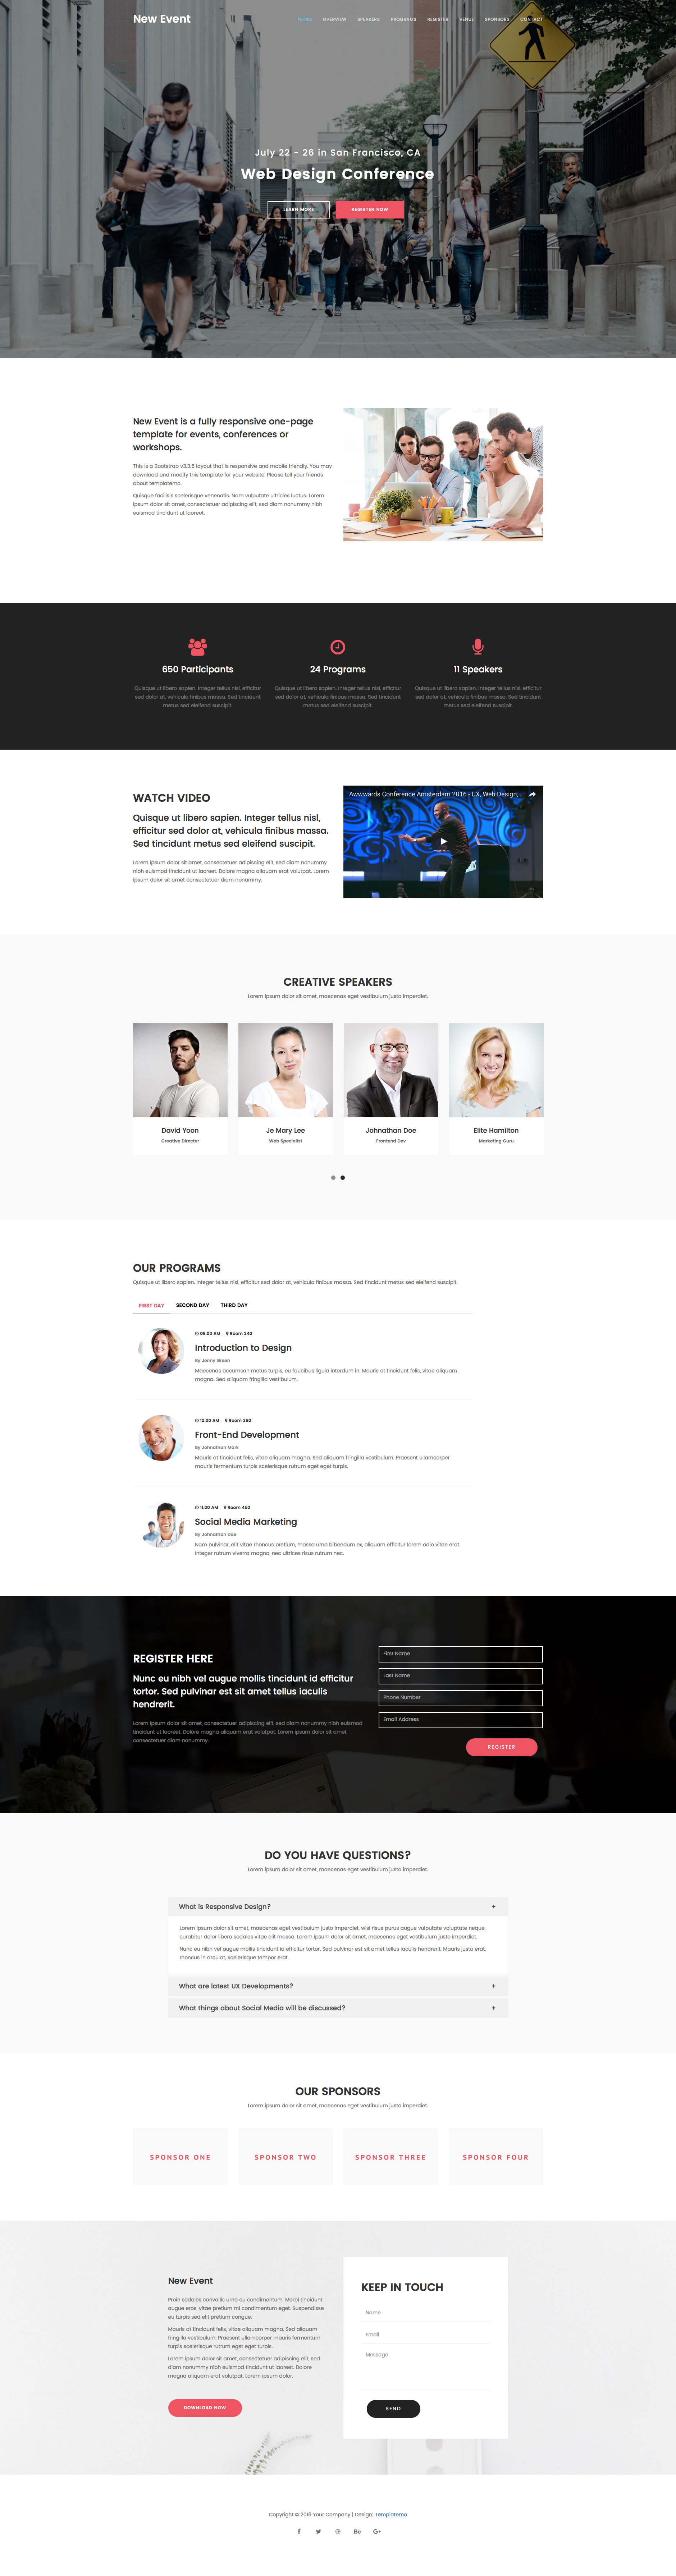 Event template html gallery template design ideas for Uo forever templates